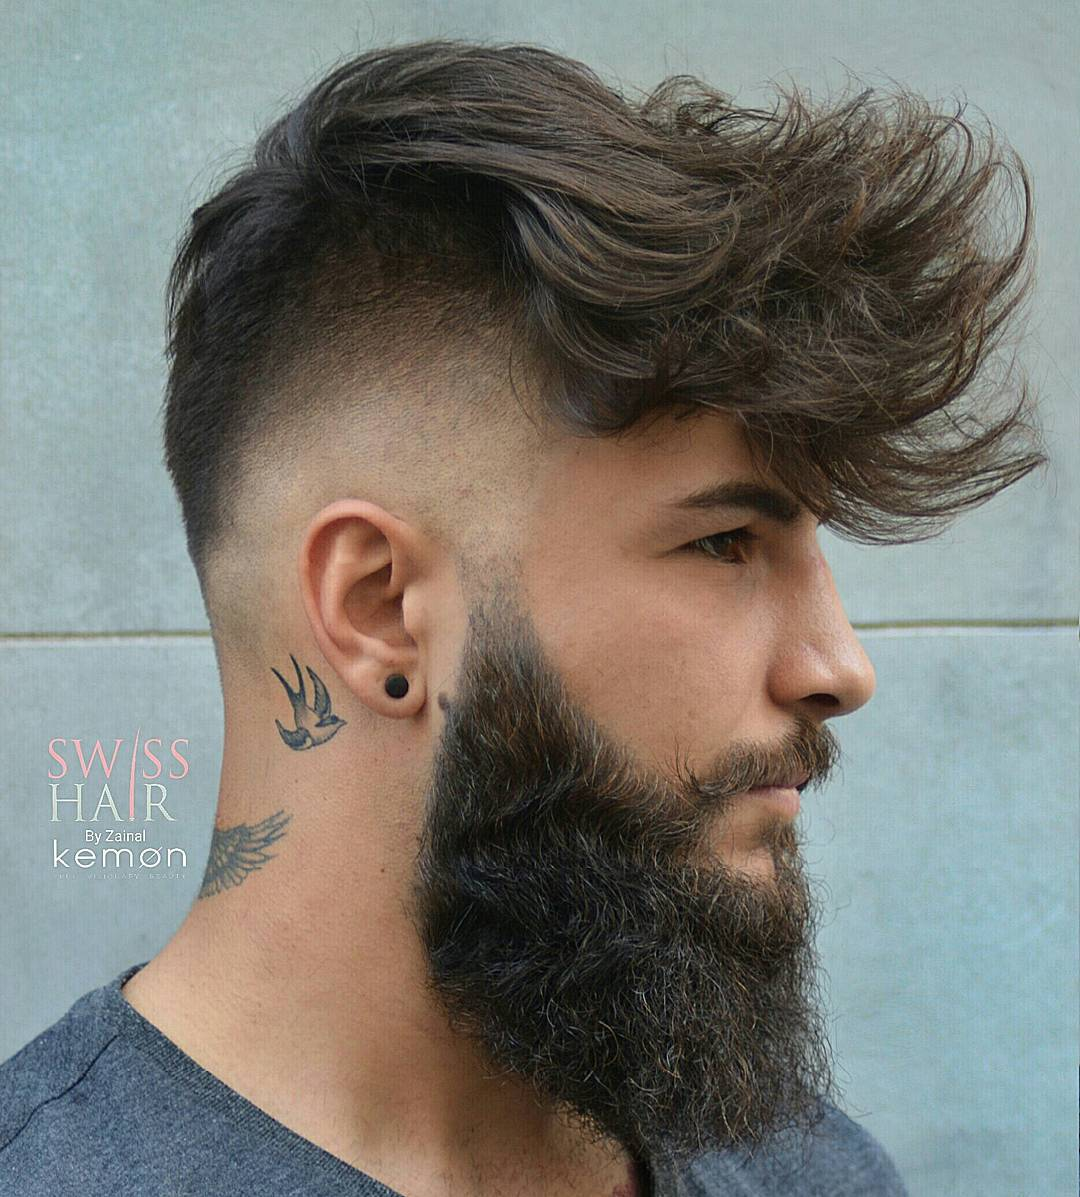 Bald Fade Undercut Hairstyle For Men + Long Fringe